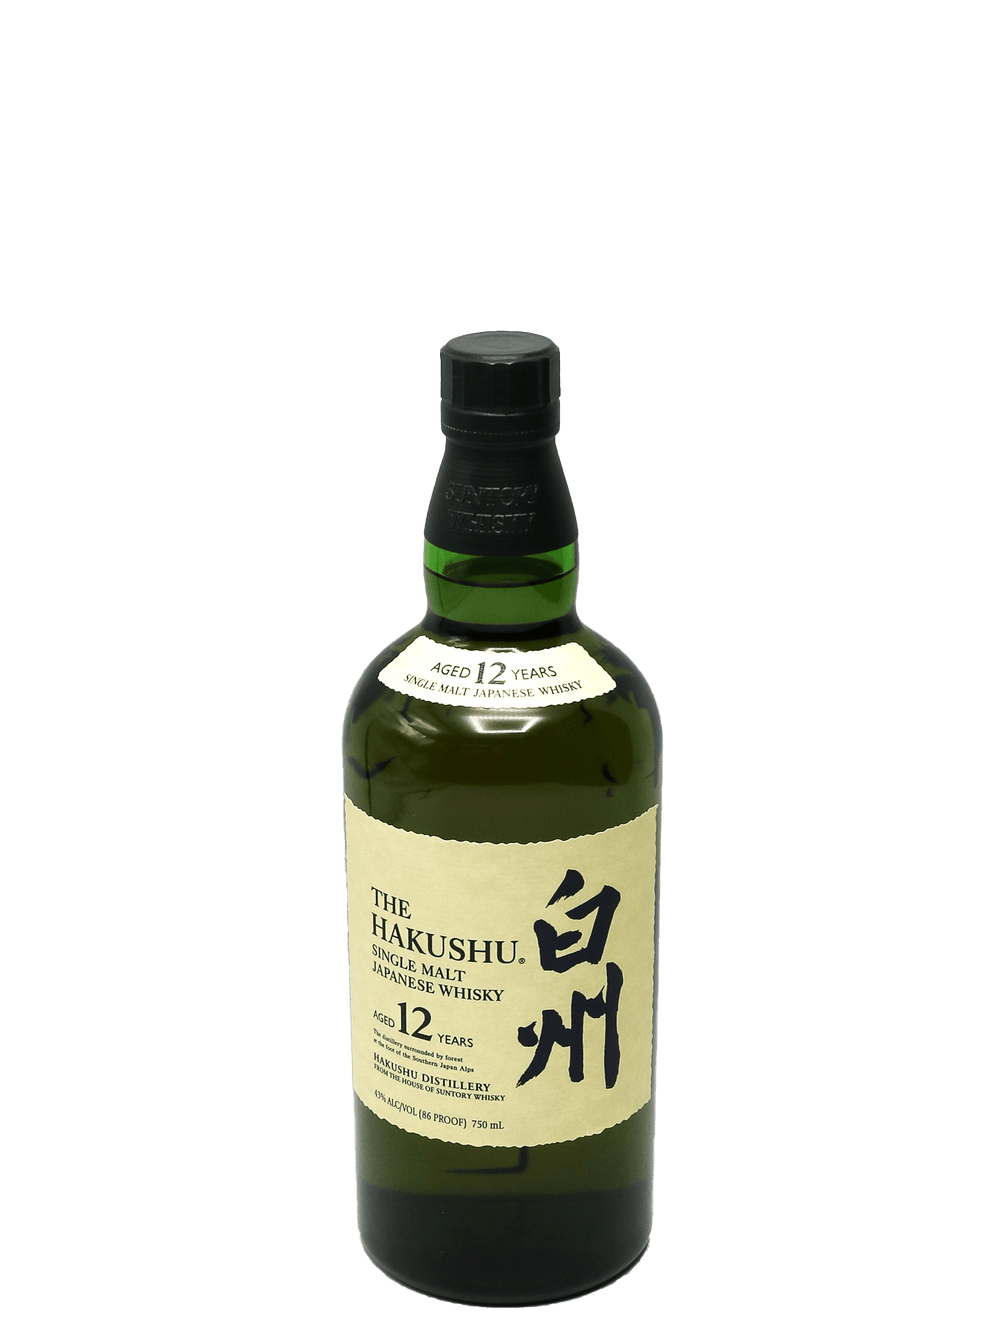 The Hakushu 12 Year Single Malt Japanese Whiskey 750ml